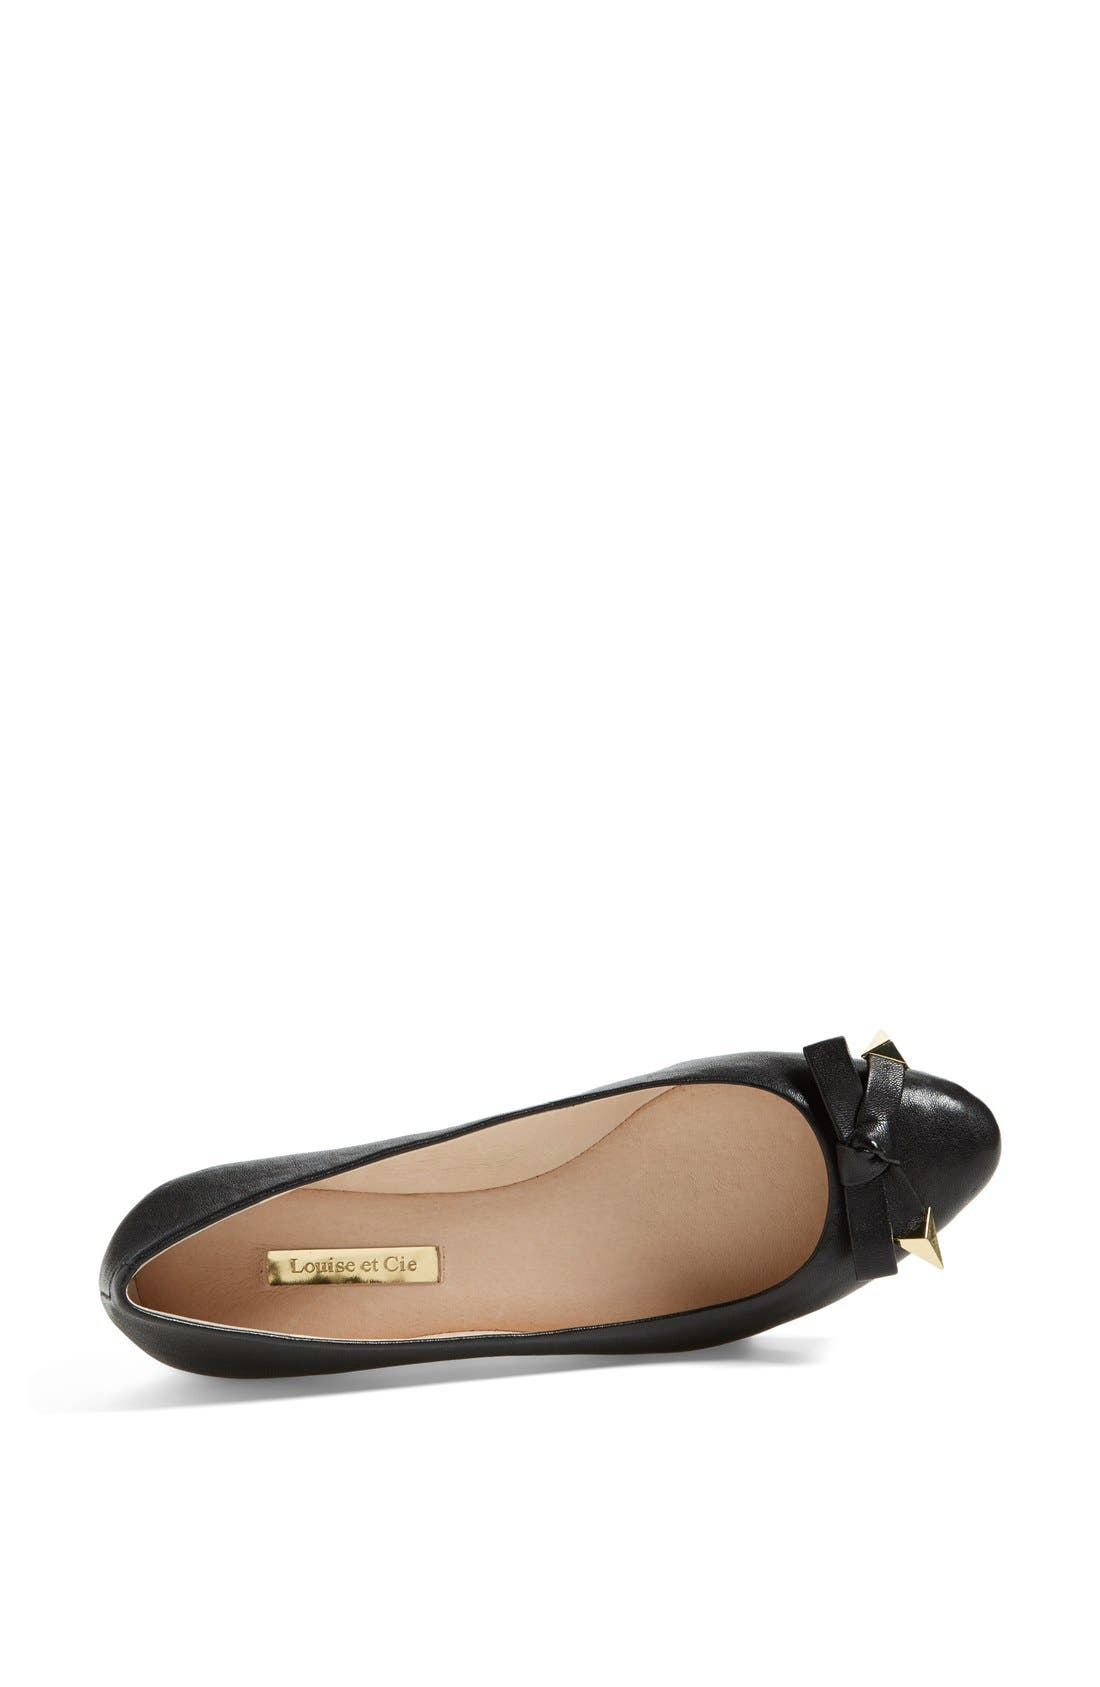 Alternate Image 3  - Louise et Cie 'Azalya' Mini Wedge Flat (Women)